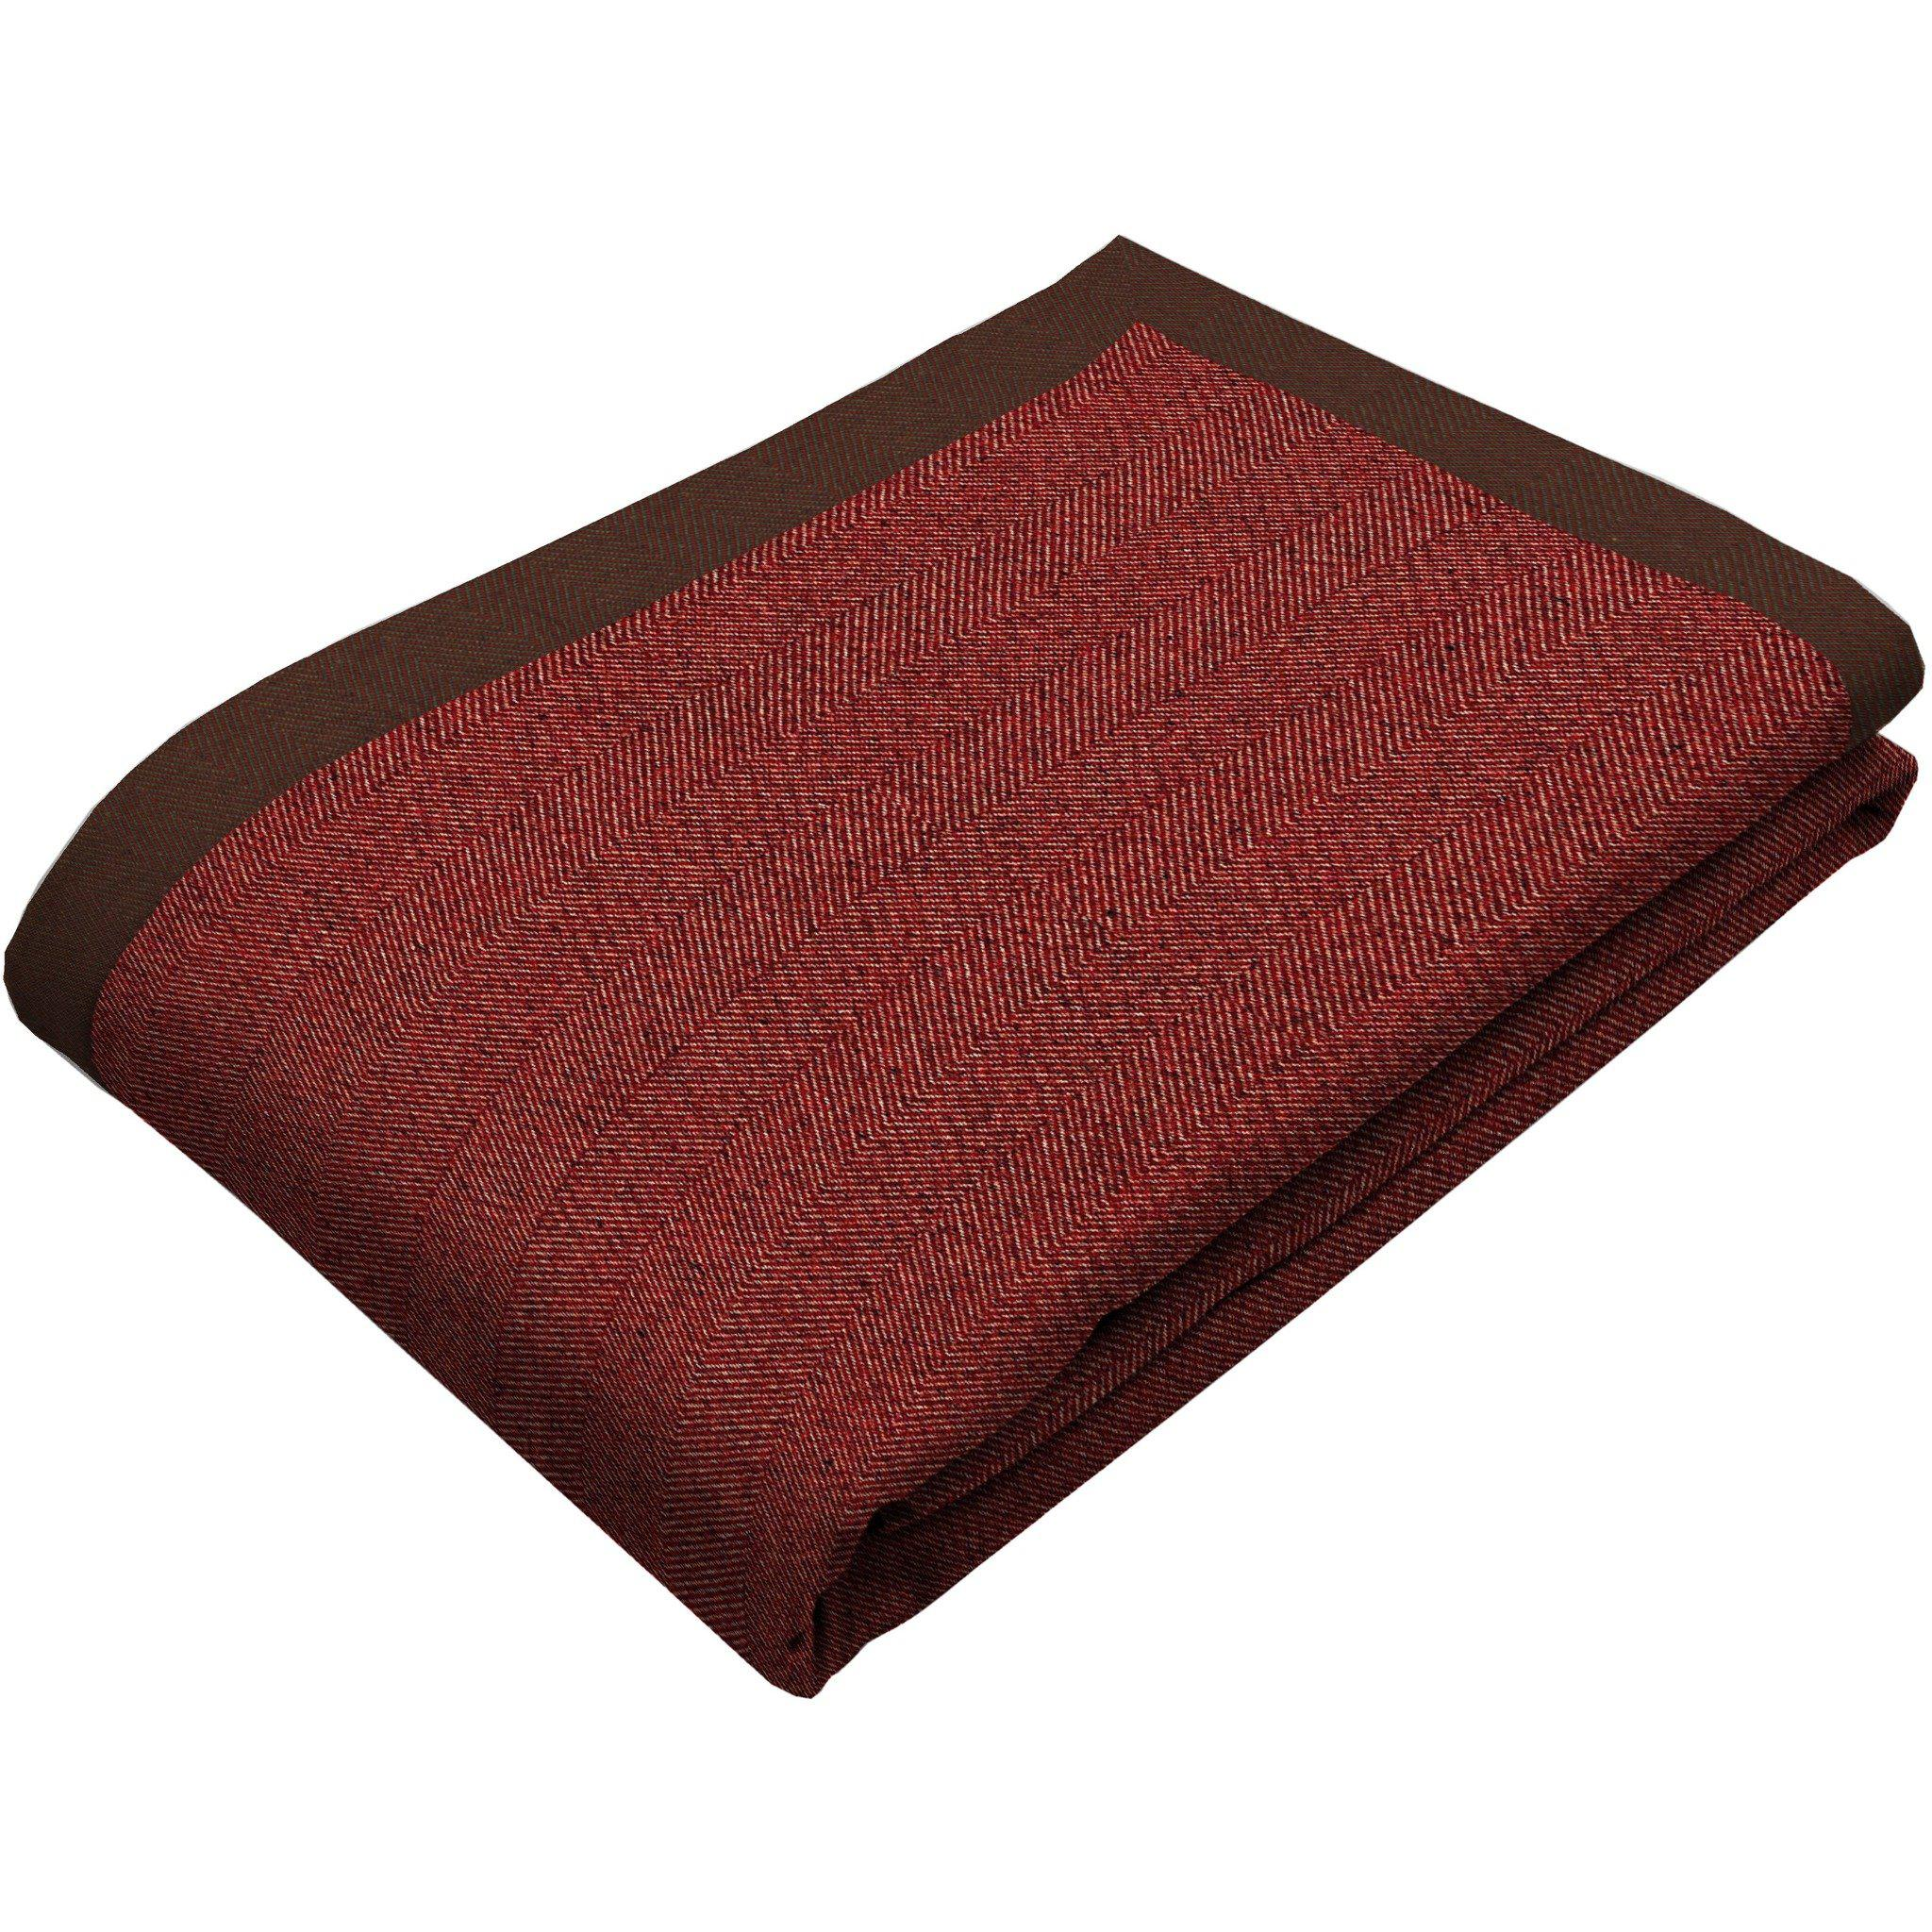 McAlister Textiles Herringbone Red Throw Blanket Throws and Runners Bed Runner (50cm x 240cm)